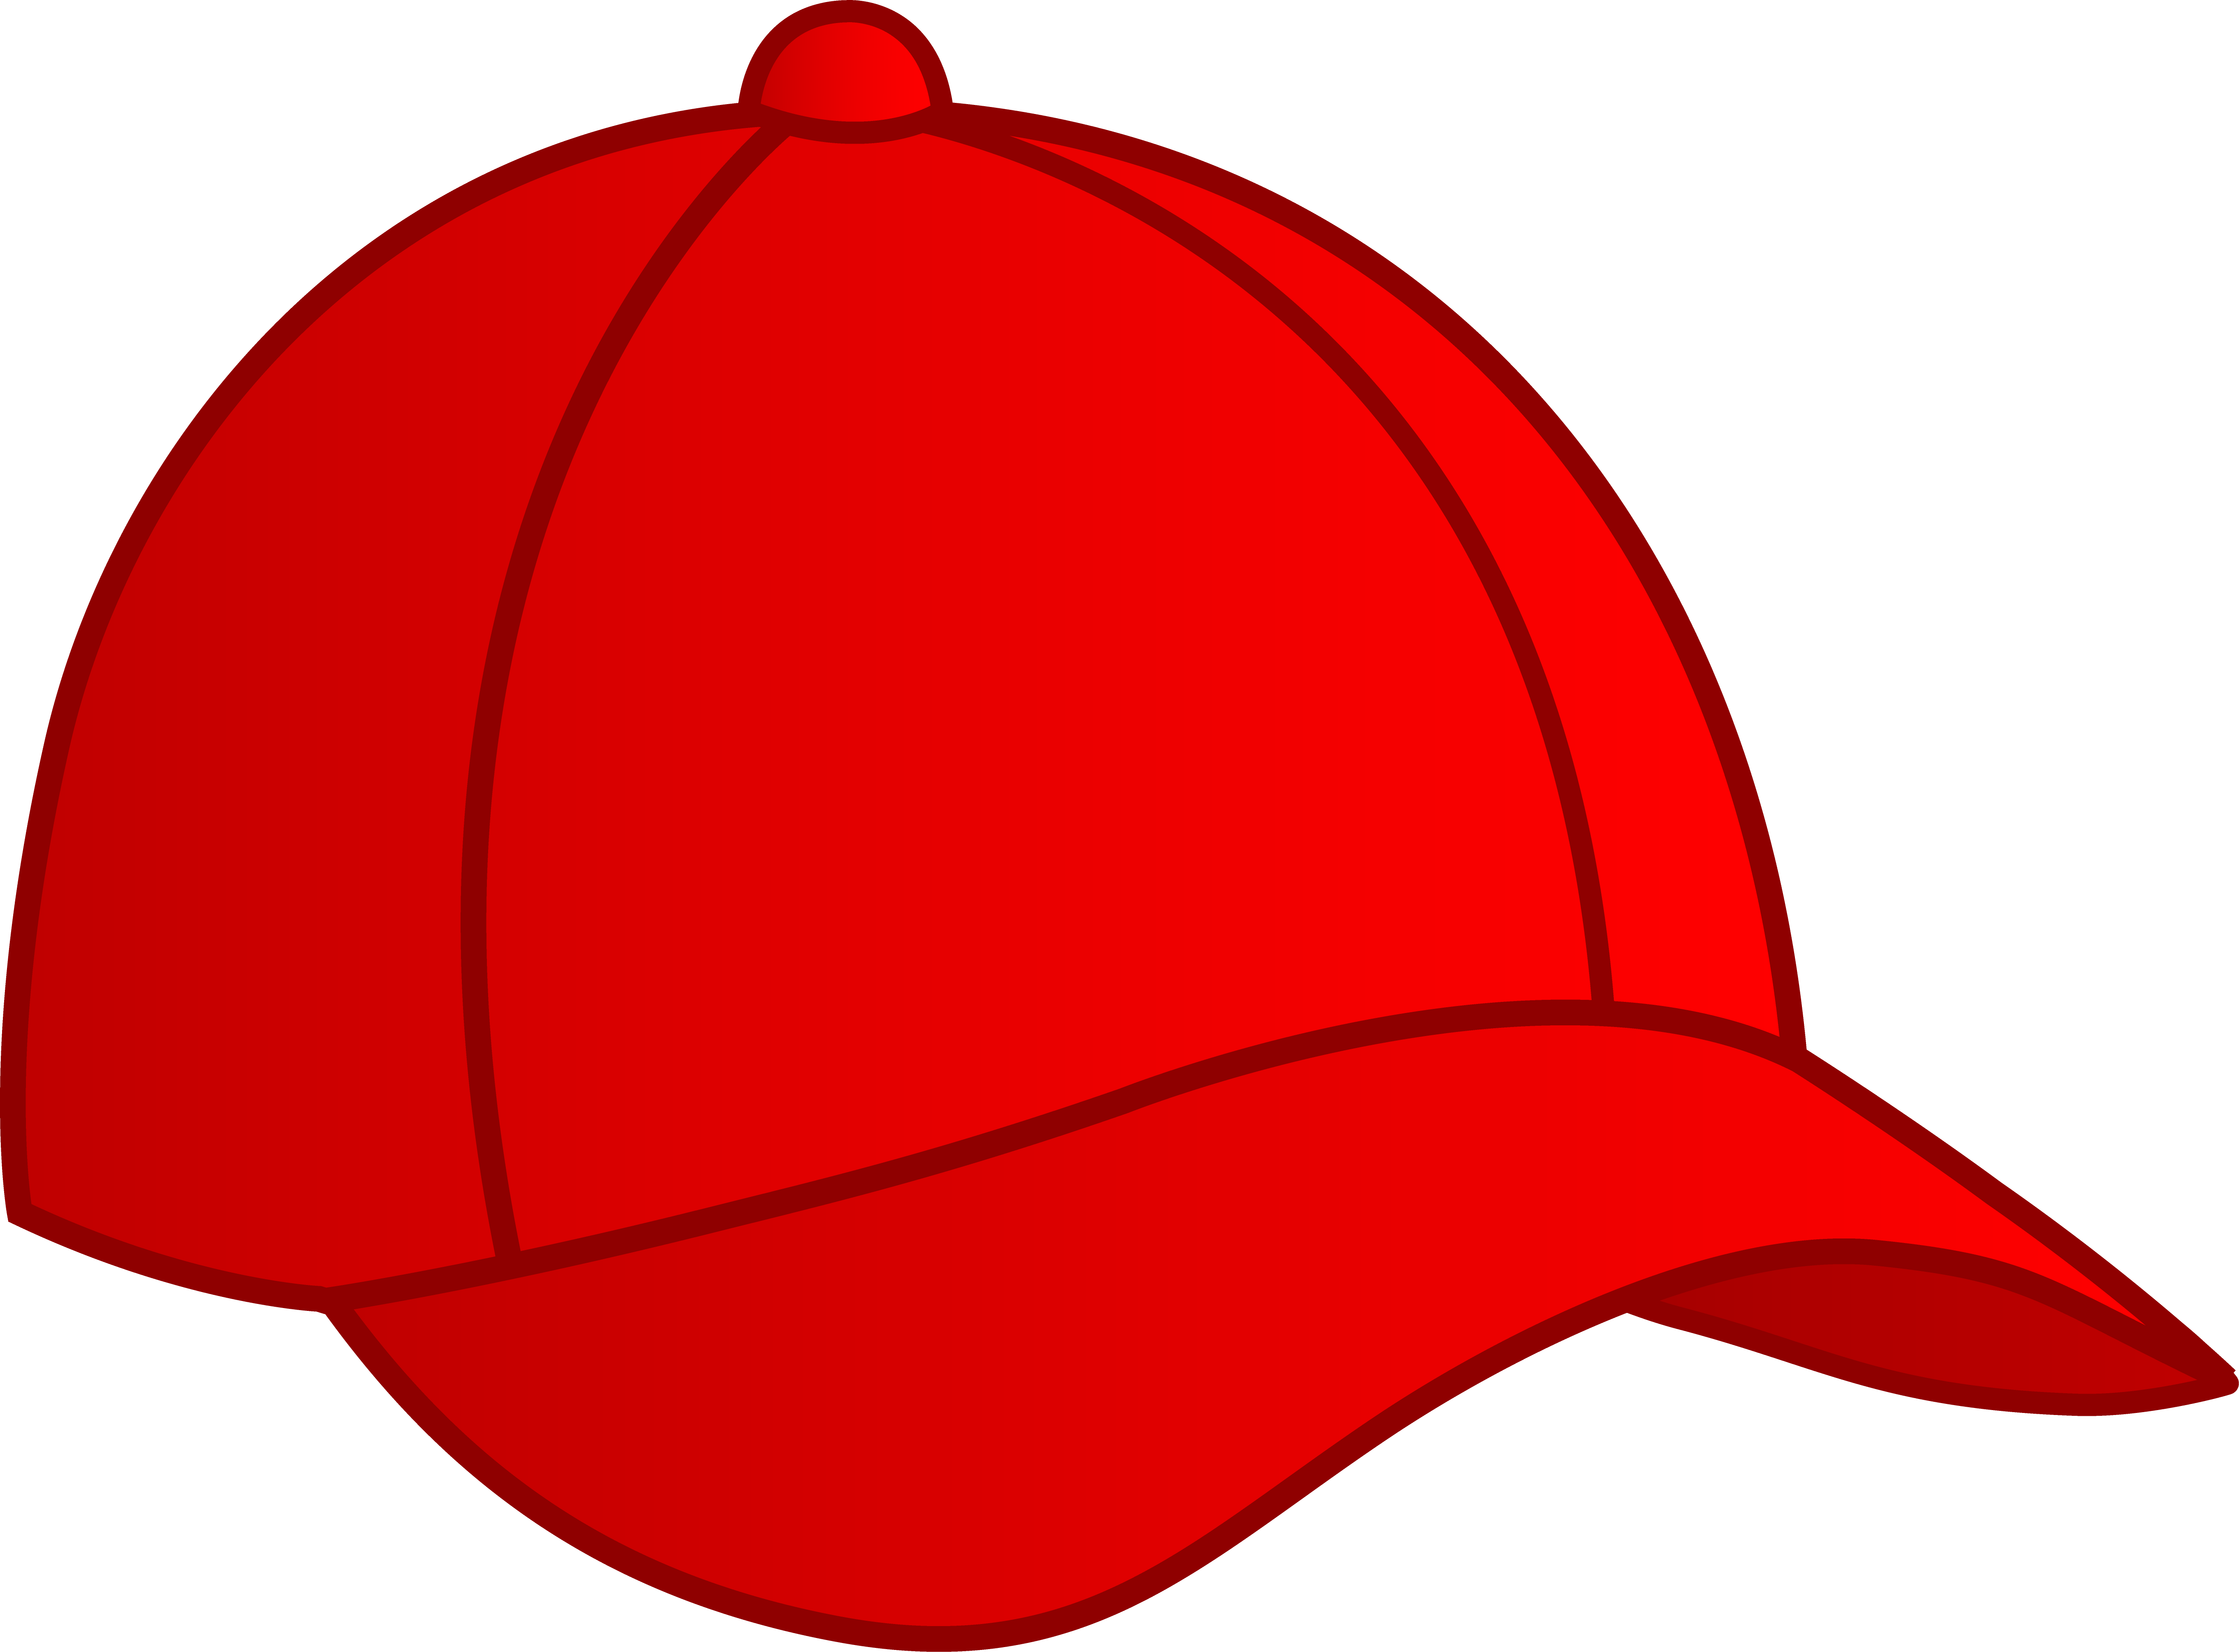 Baseball Hat Clipart Side View Free Clip-Baseball hat clipart side view free clipart images-1